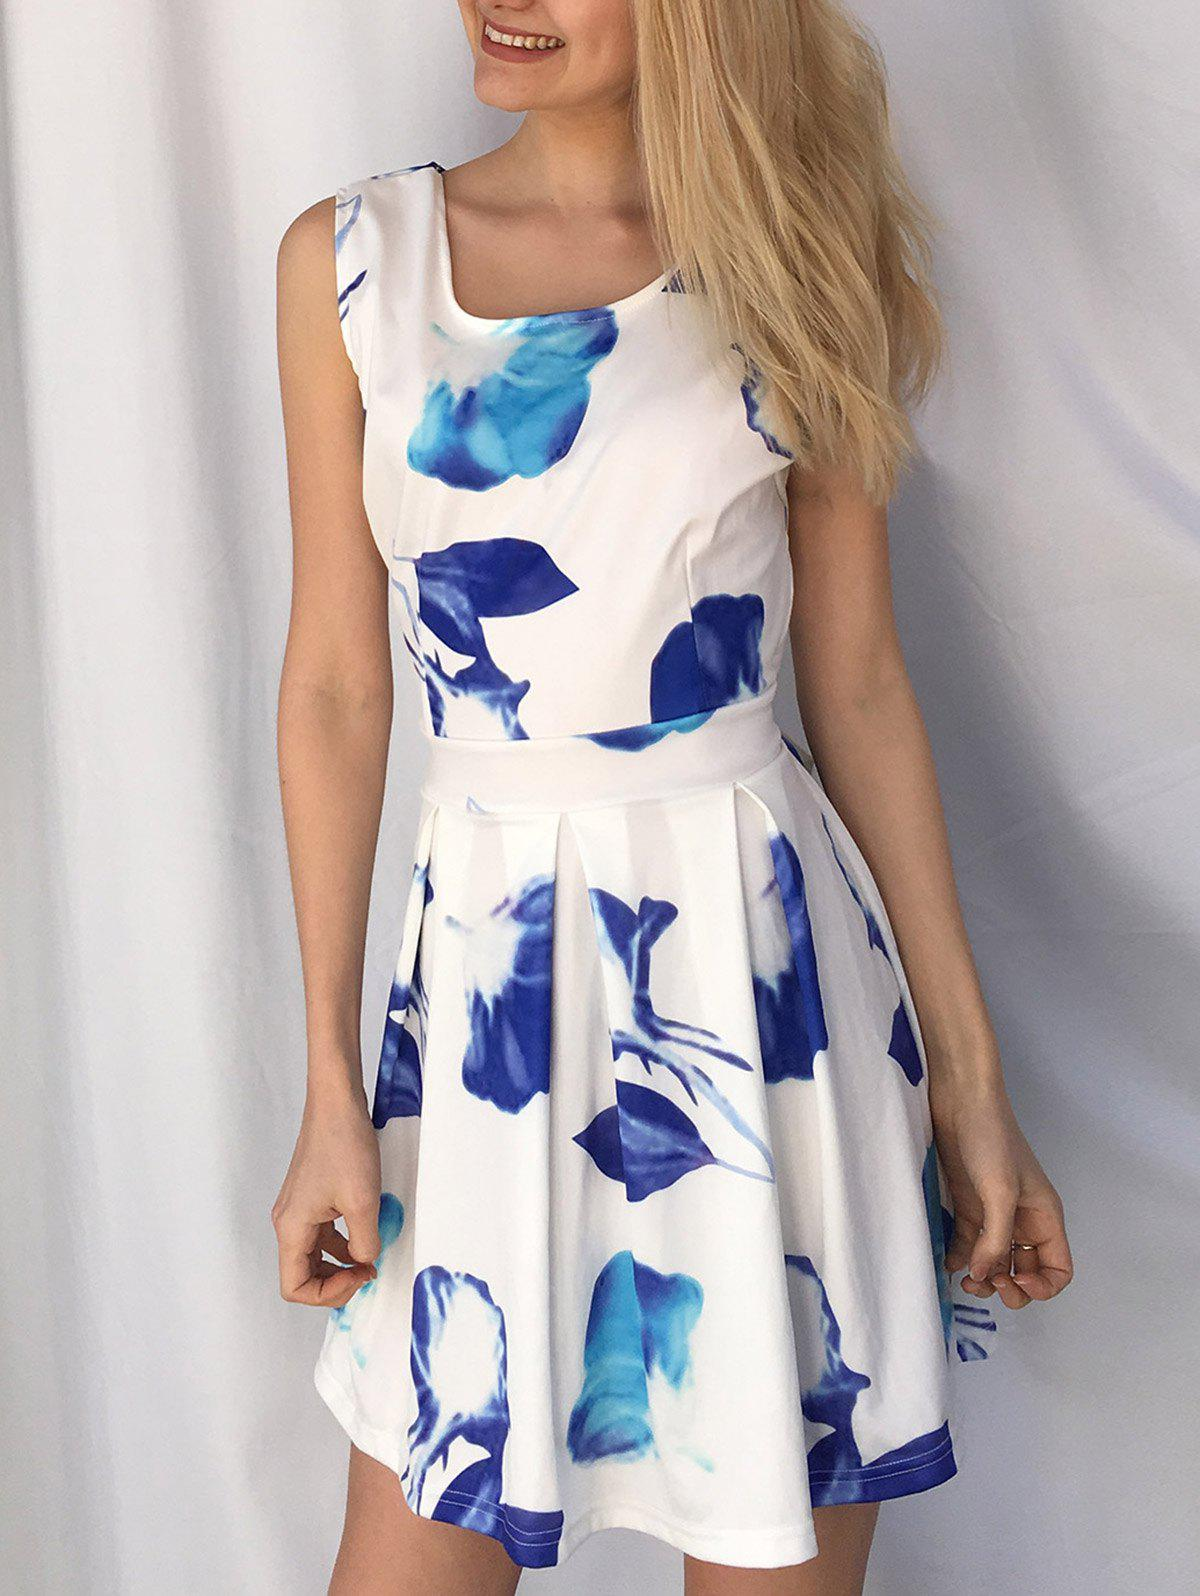 Leisure Sleeveless Scoop Neck Hollow Out Floral Print Women's Dress - XL BLUE/WHITE